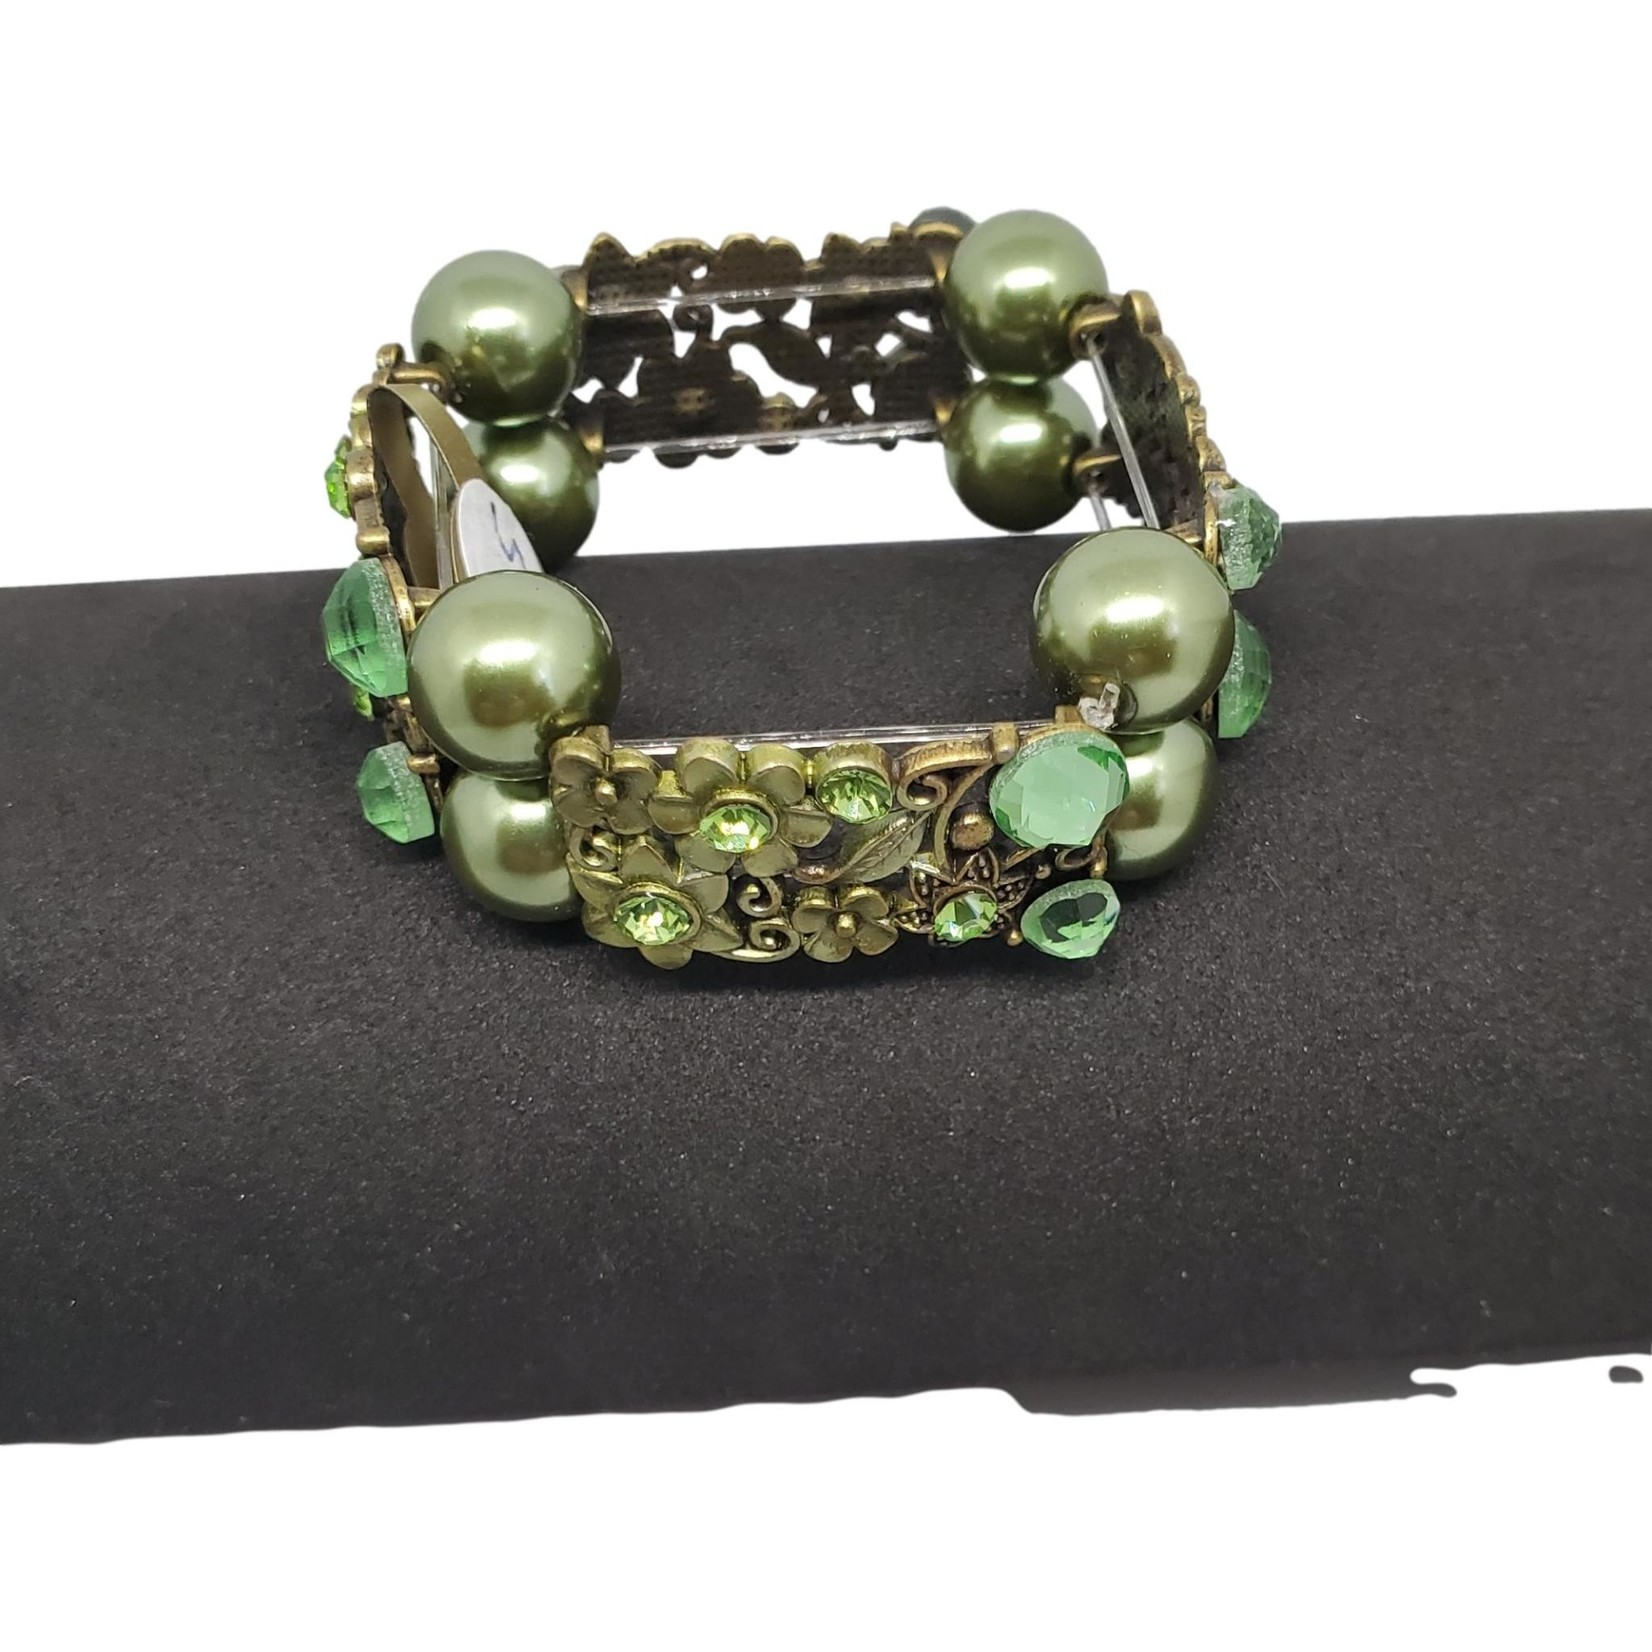 Jewellery by Deborah Young-Groves Green Beads with Floral Pieces Bracelet